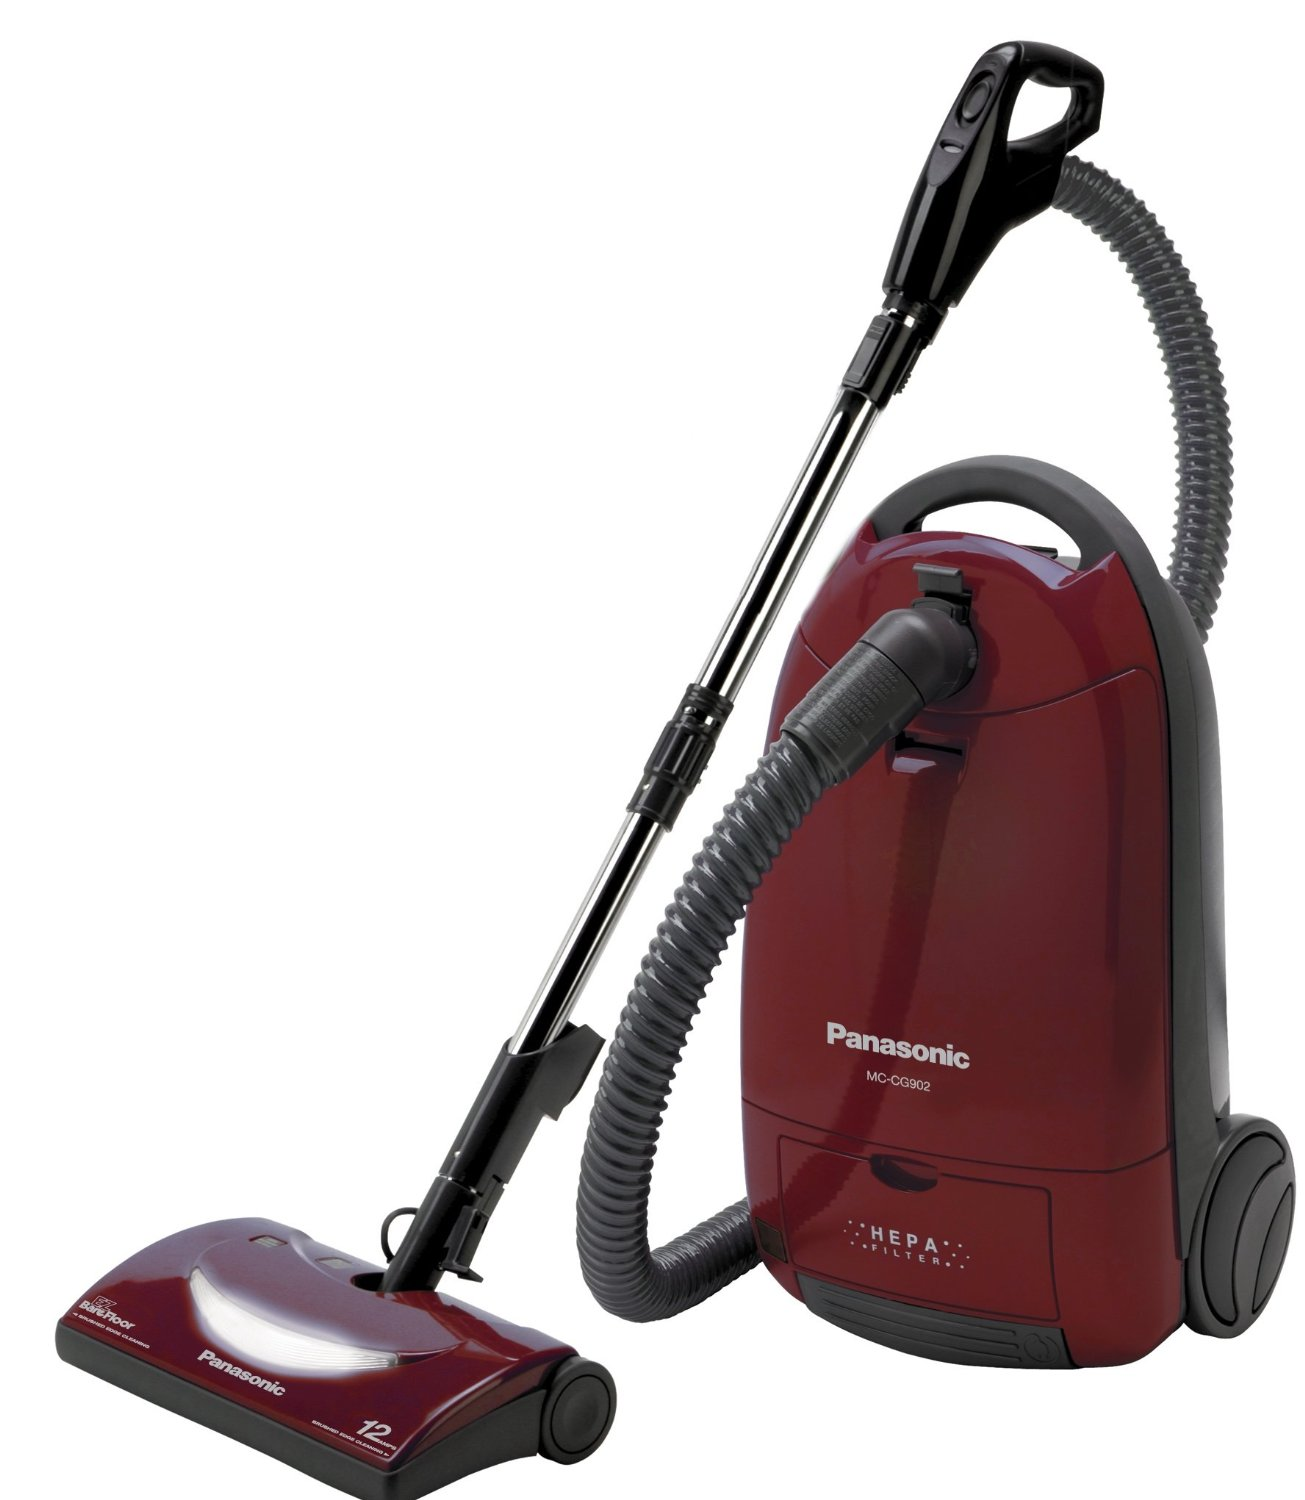 Amazing Panasonic MC CG902 Full Size Bag Canister Vacuum Cleaner